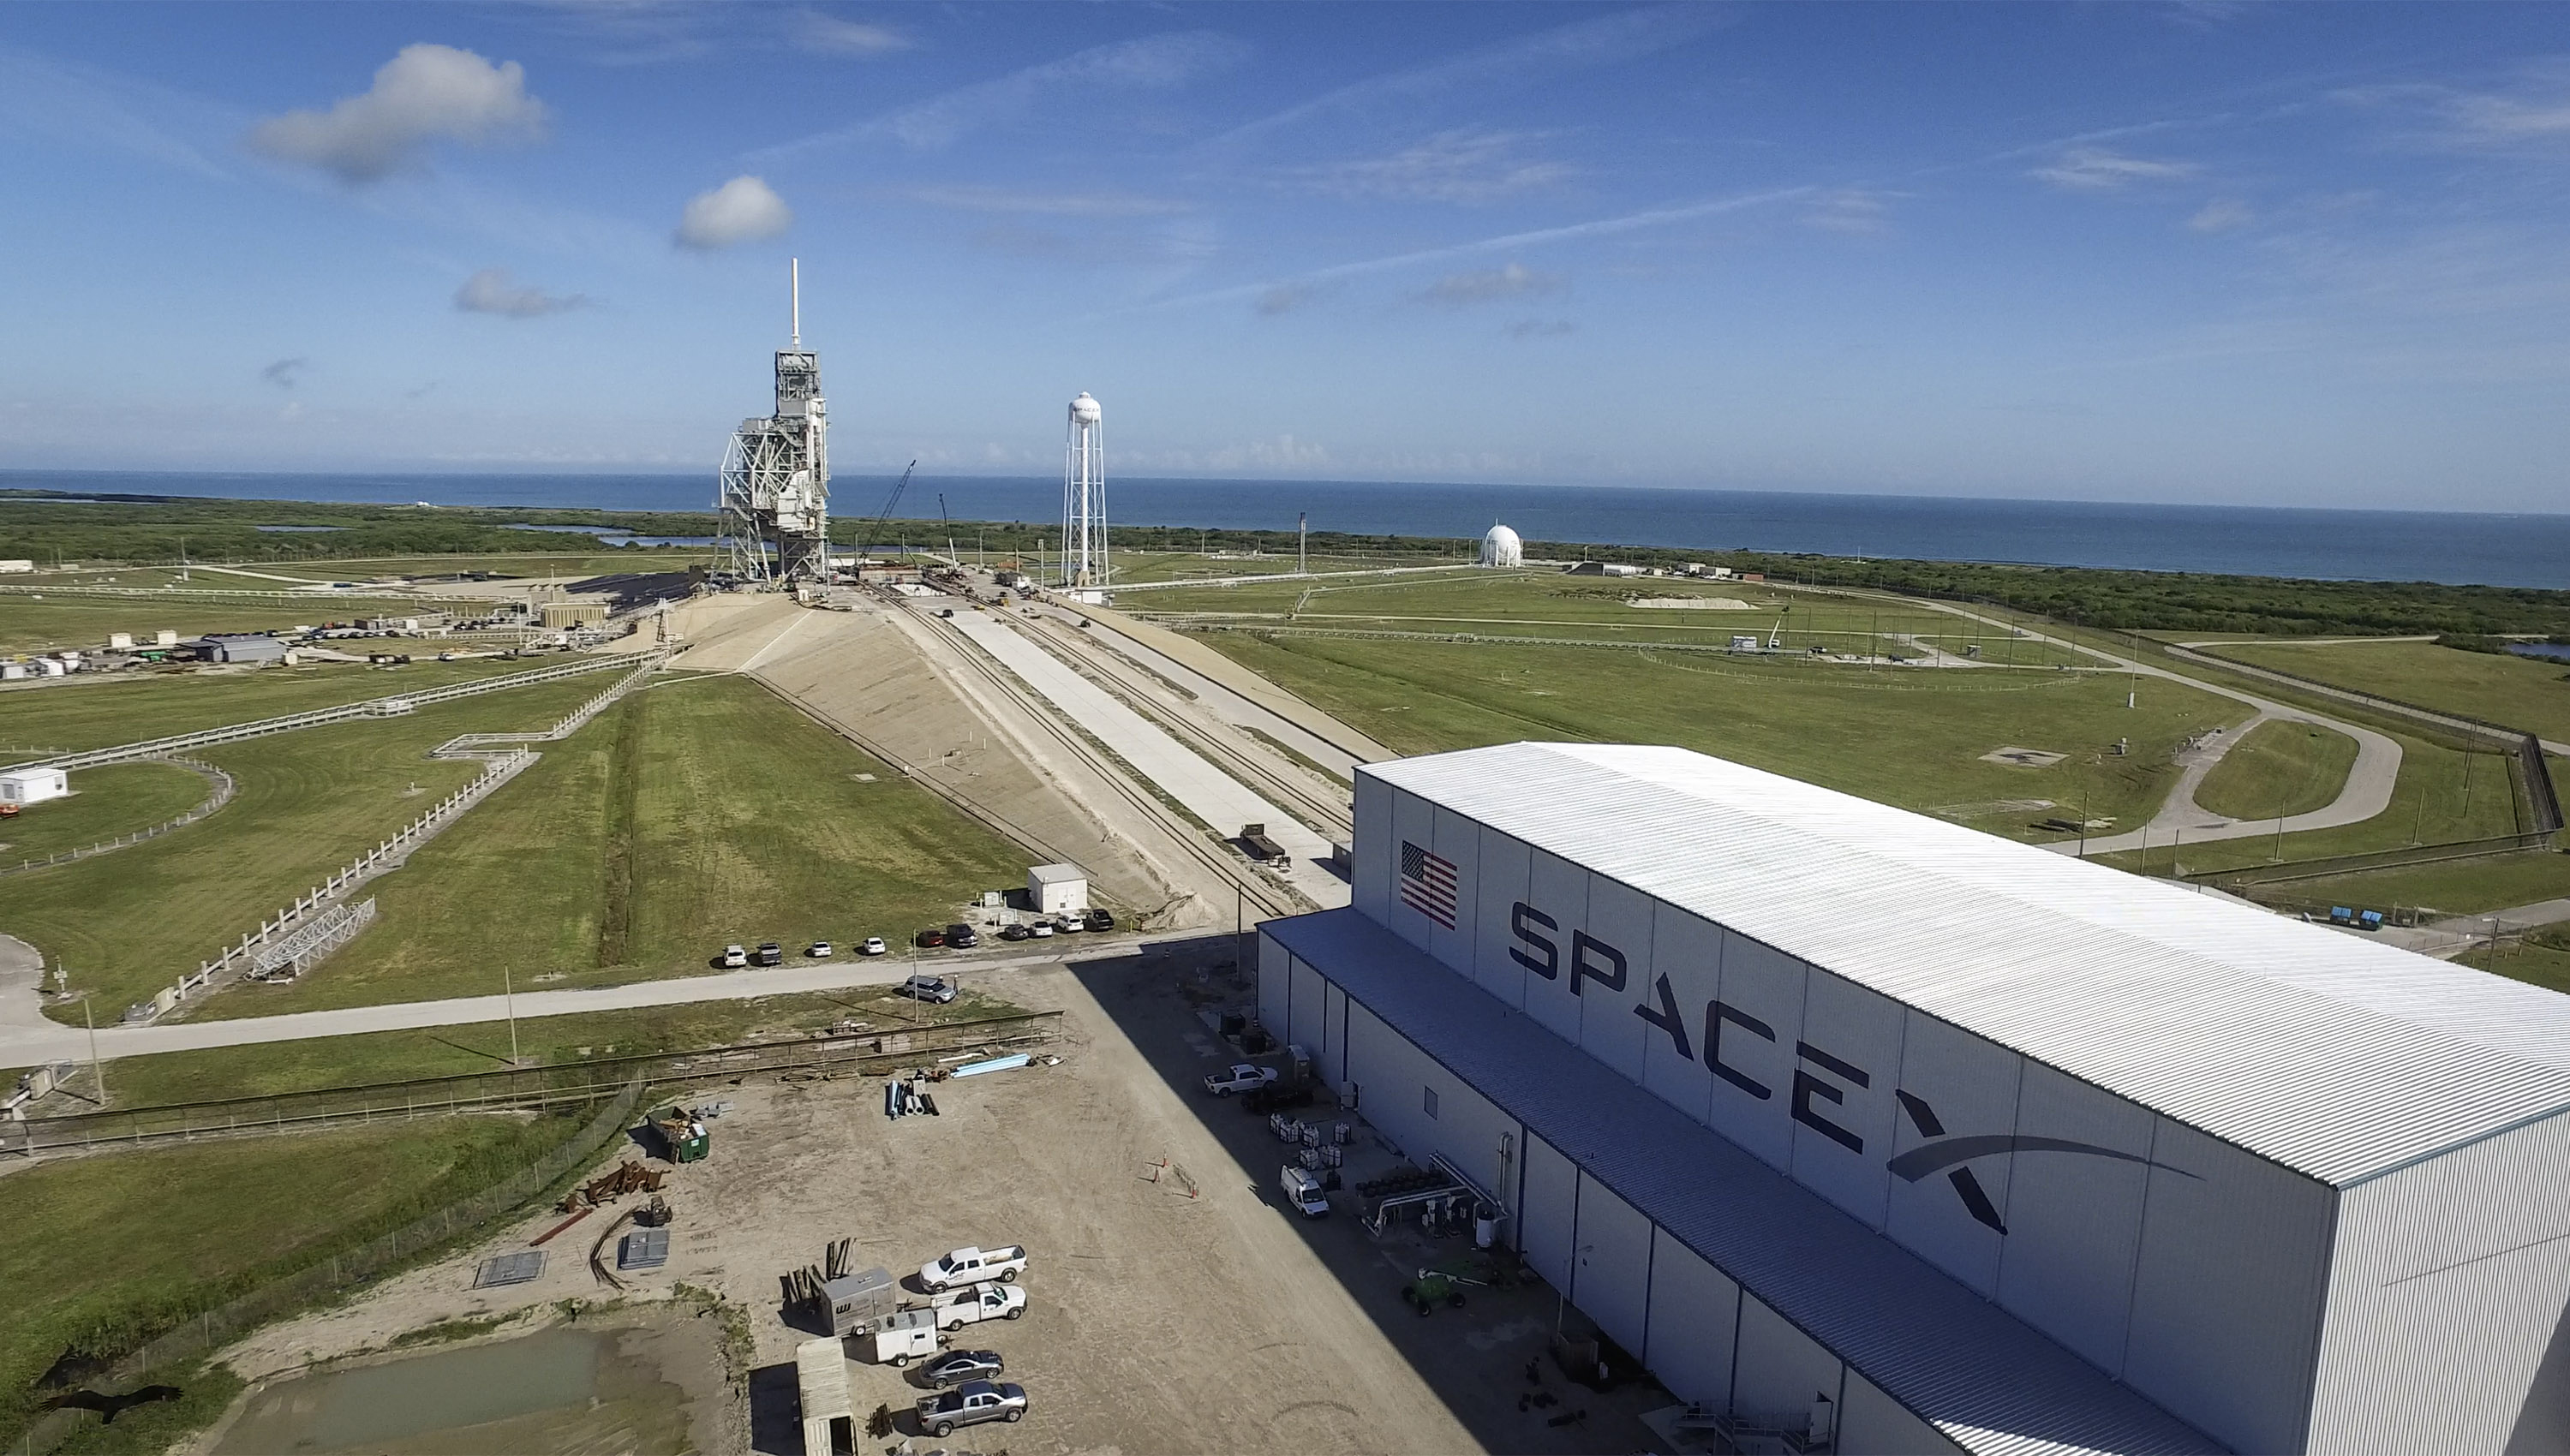 Spacex kennedy space center 39a